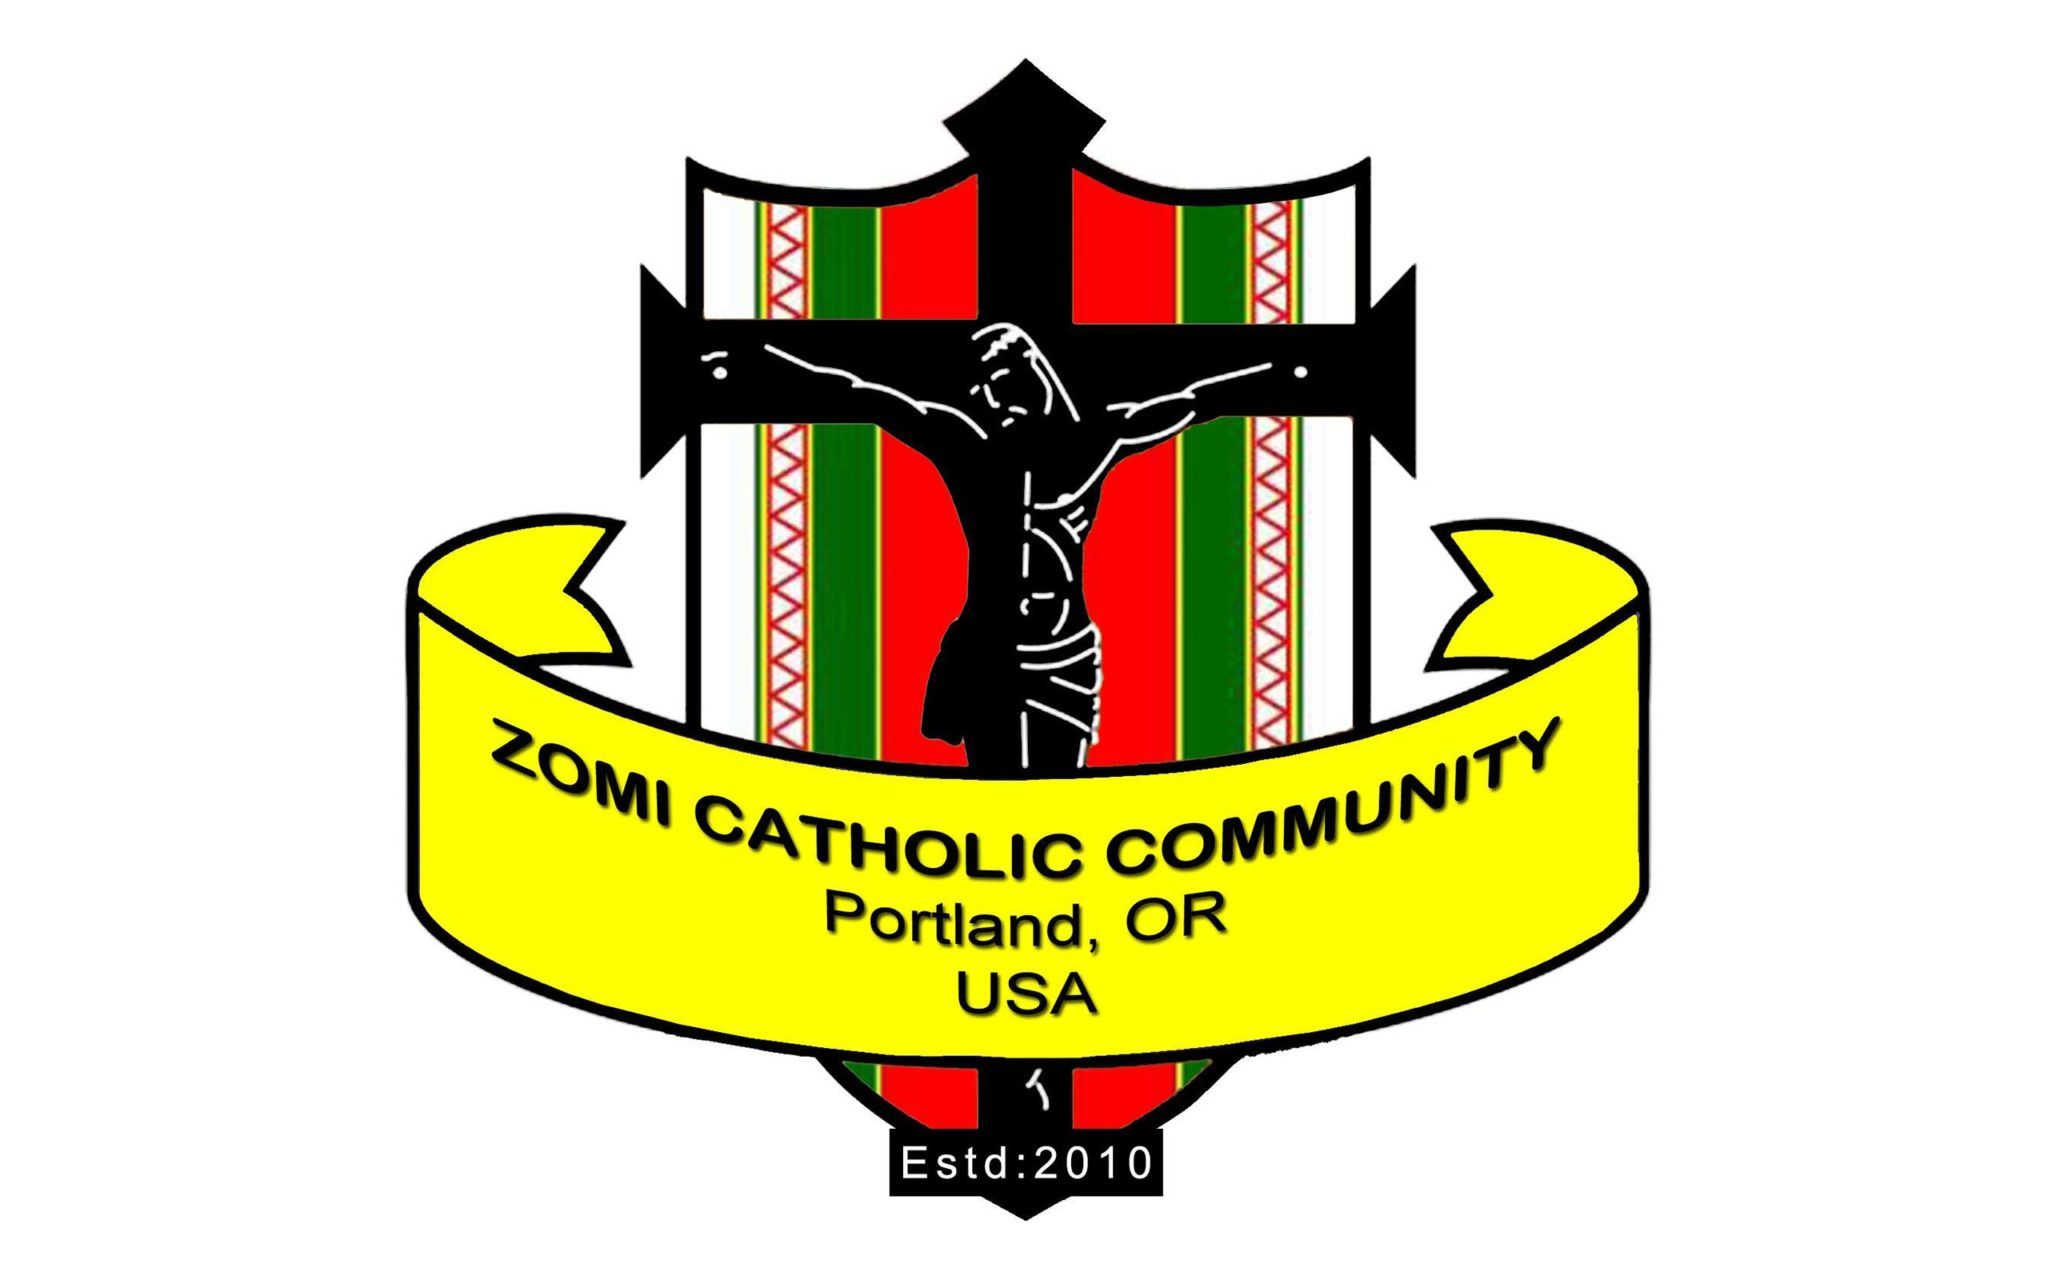 Zomi Catholic Community of Portland, Oregon